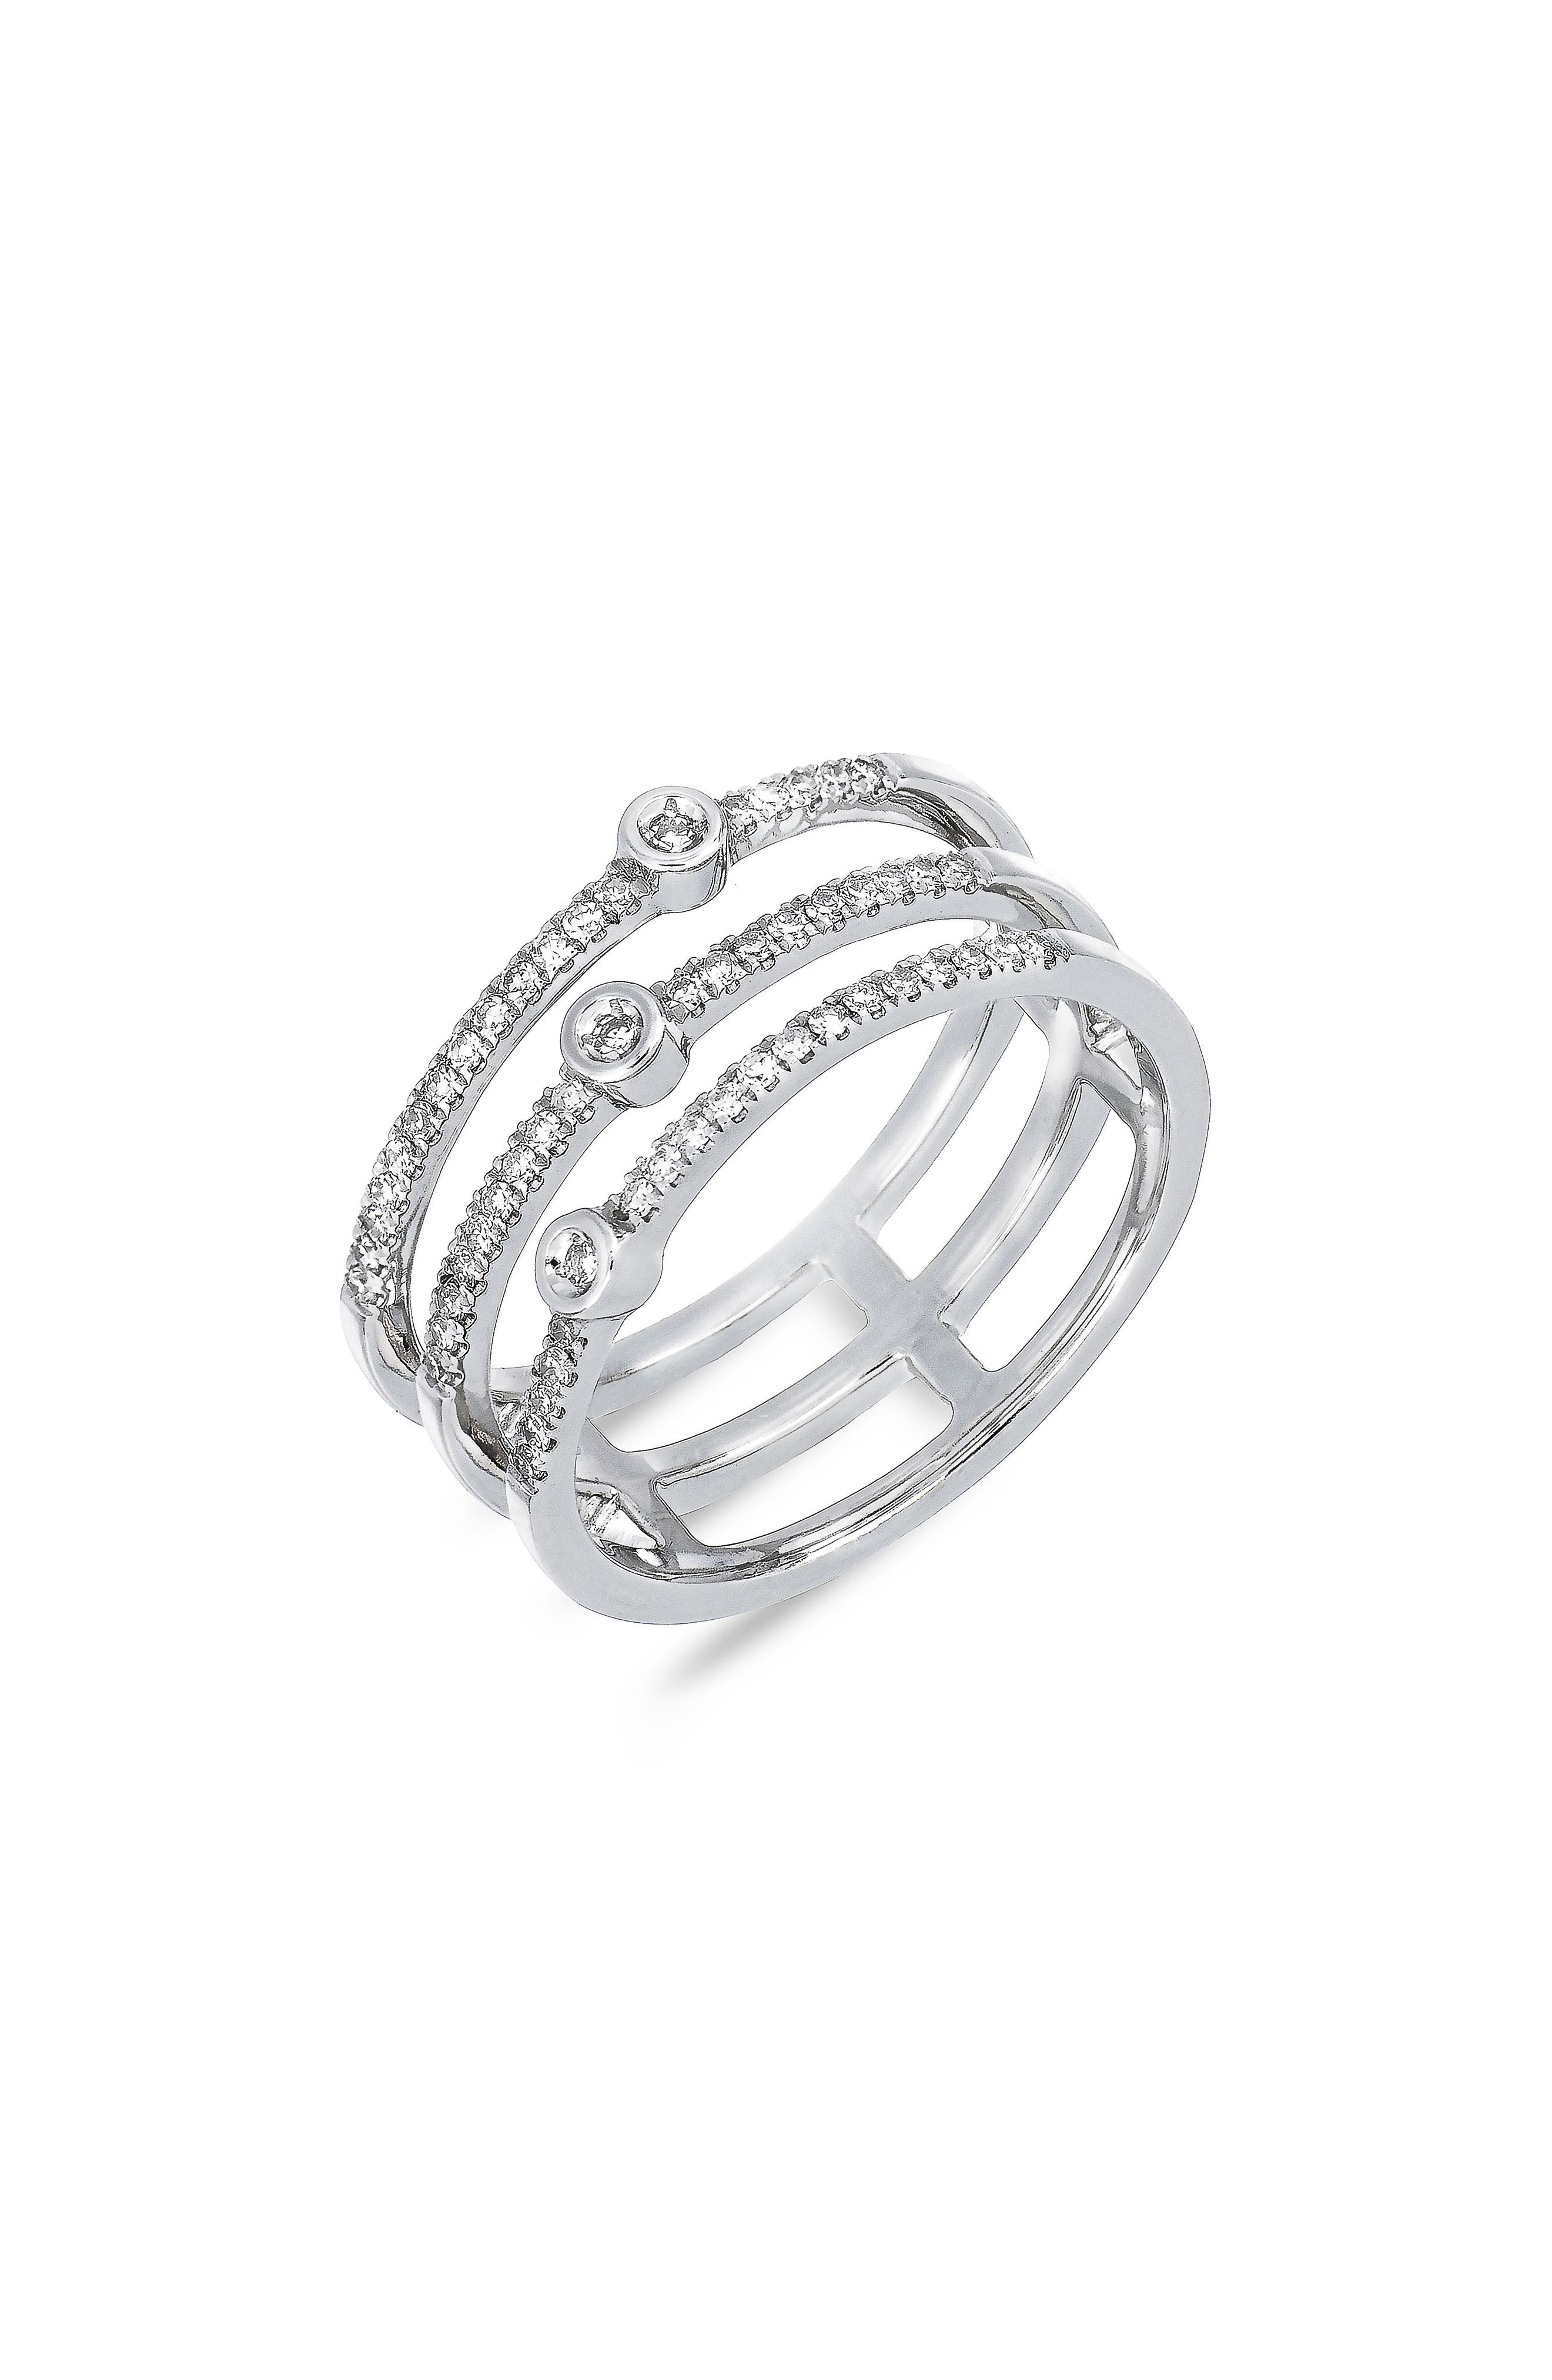 Carrière Triple Row Diamond Stackable Ring,                             Main thumbnail 1, color,                             STERLING SILVER/ DIAMOND